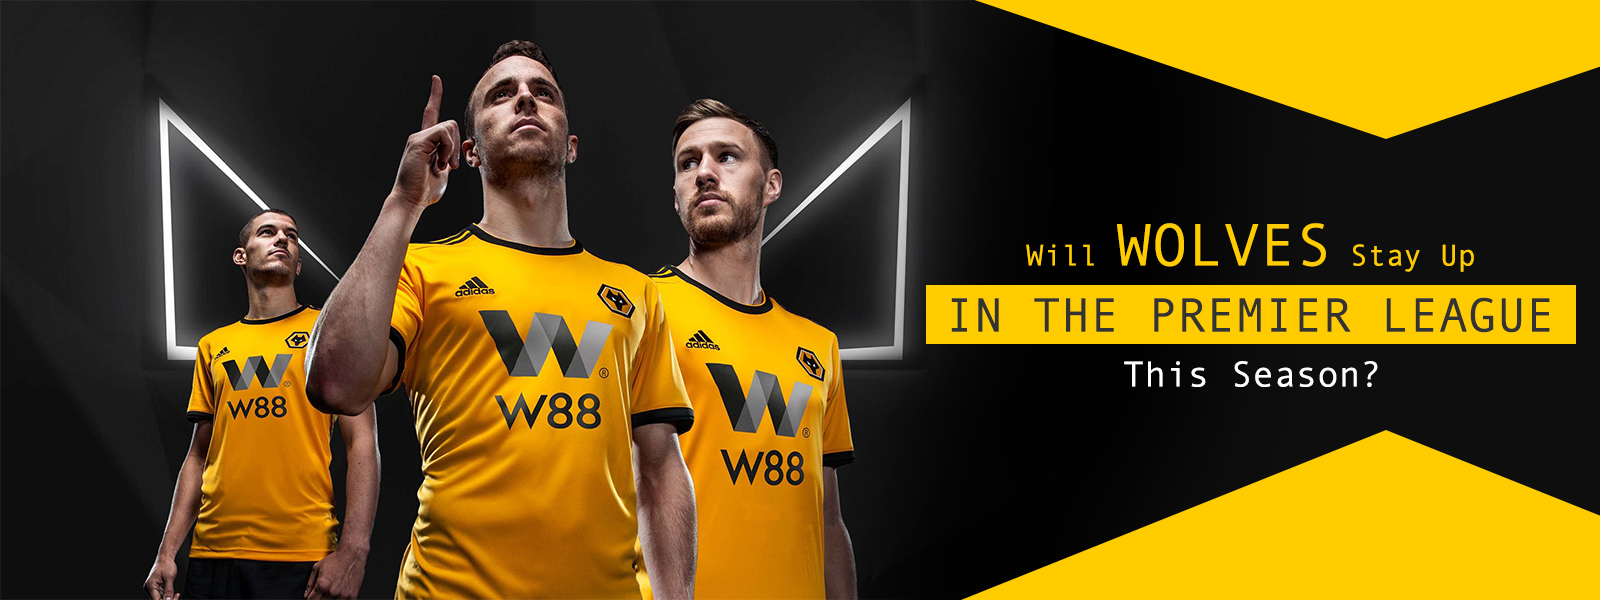 Will Wolves Stay Up In The Premier League This Season?